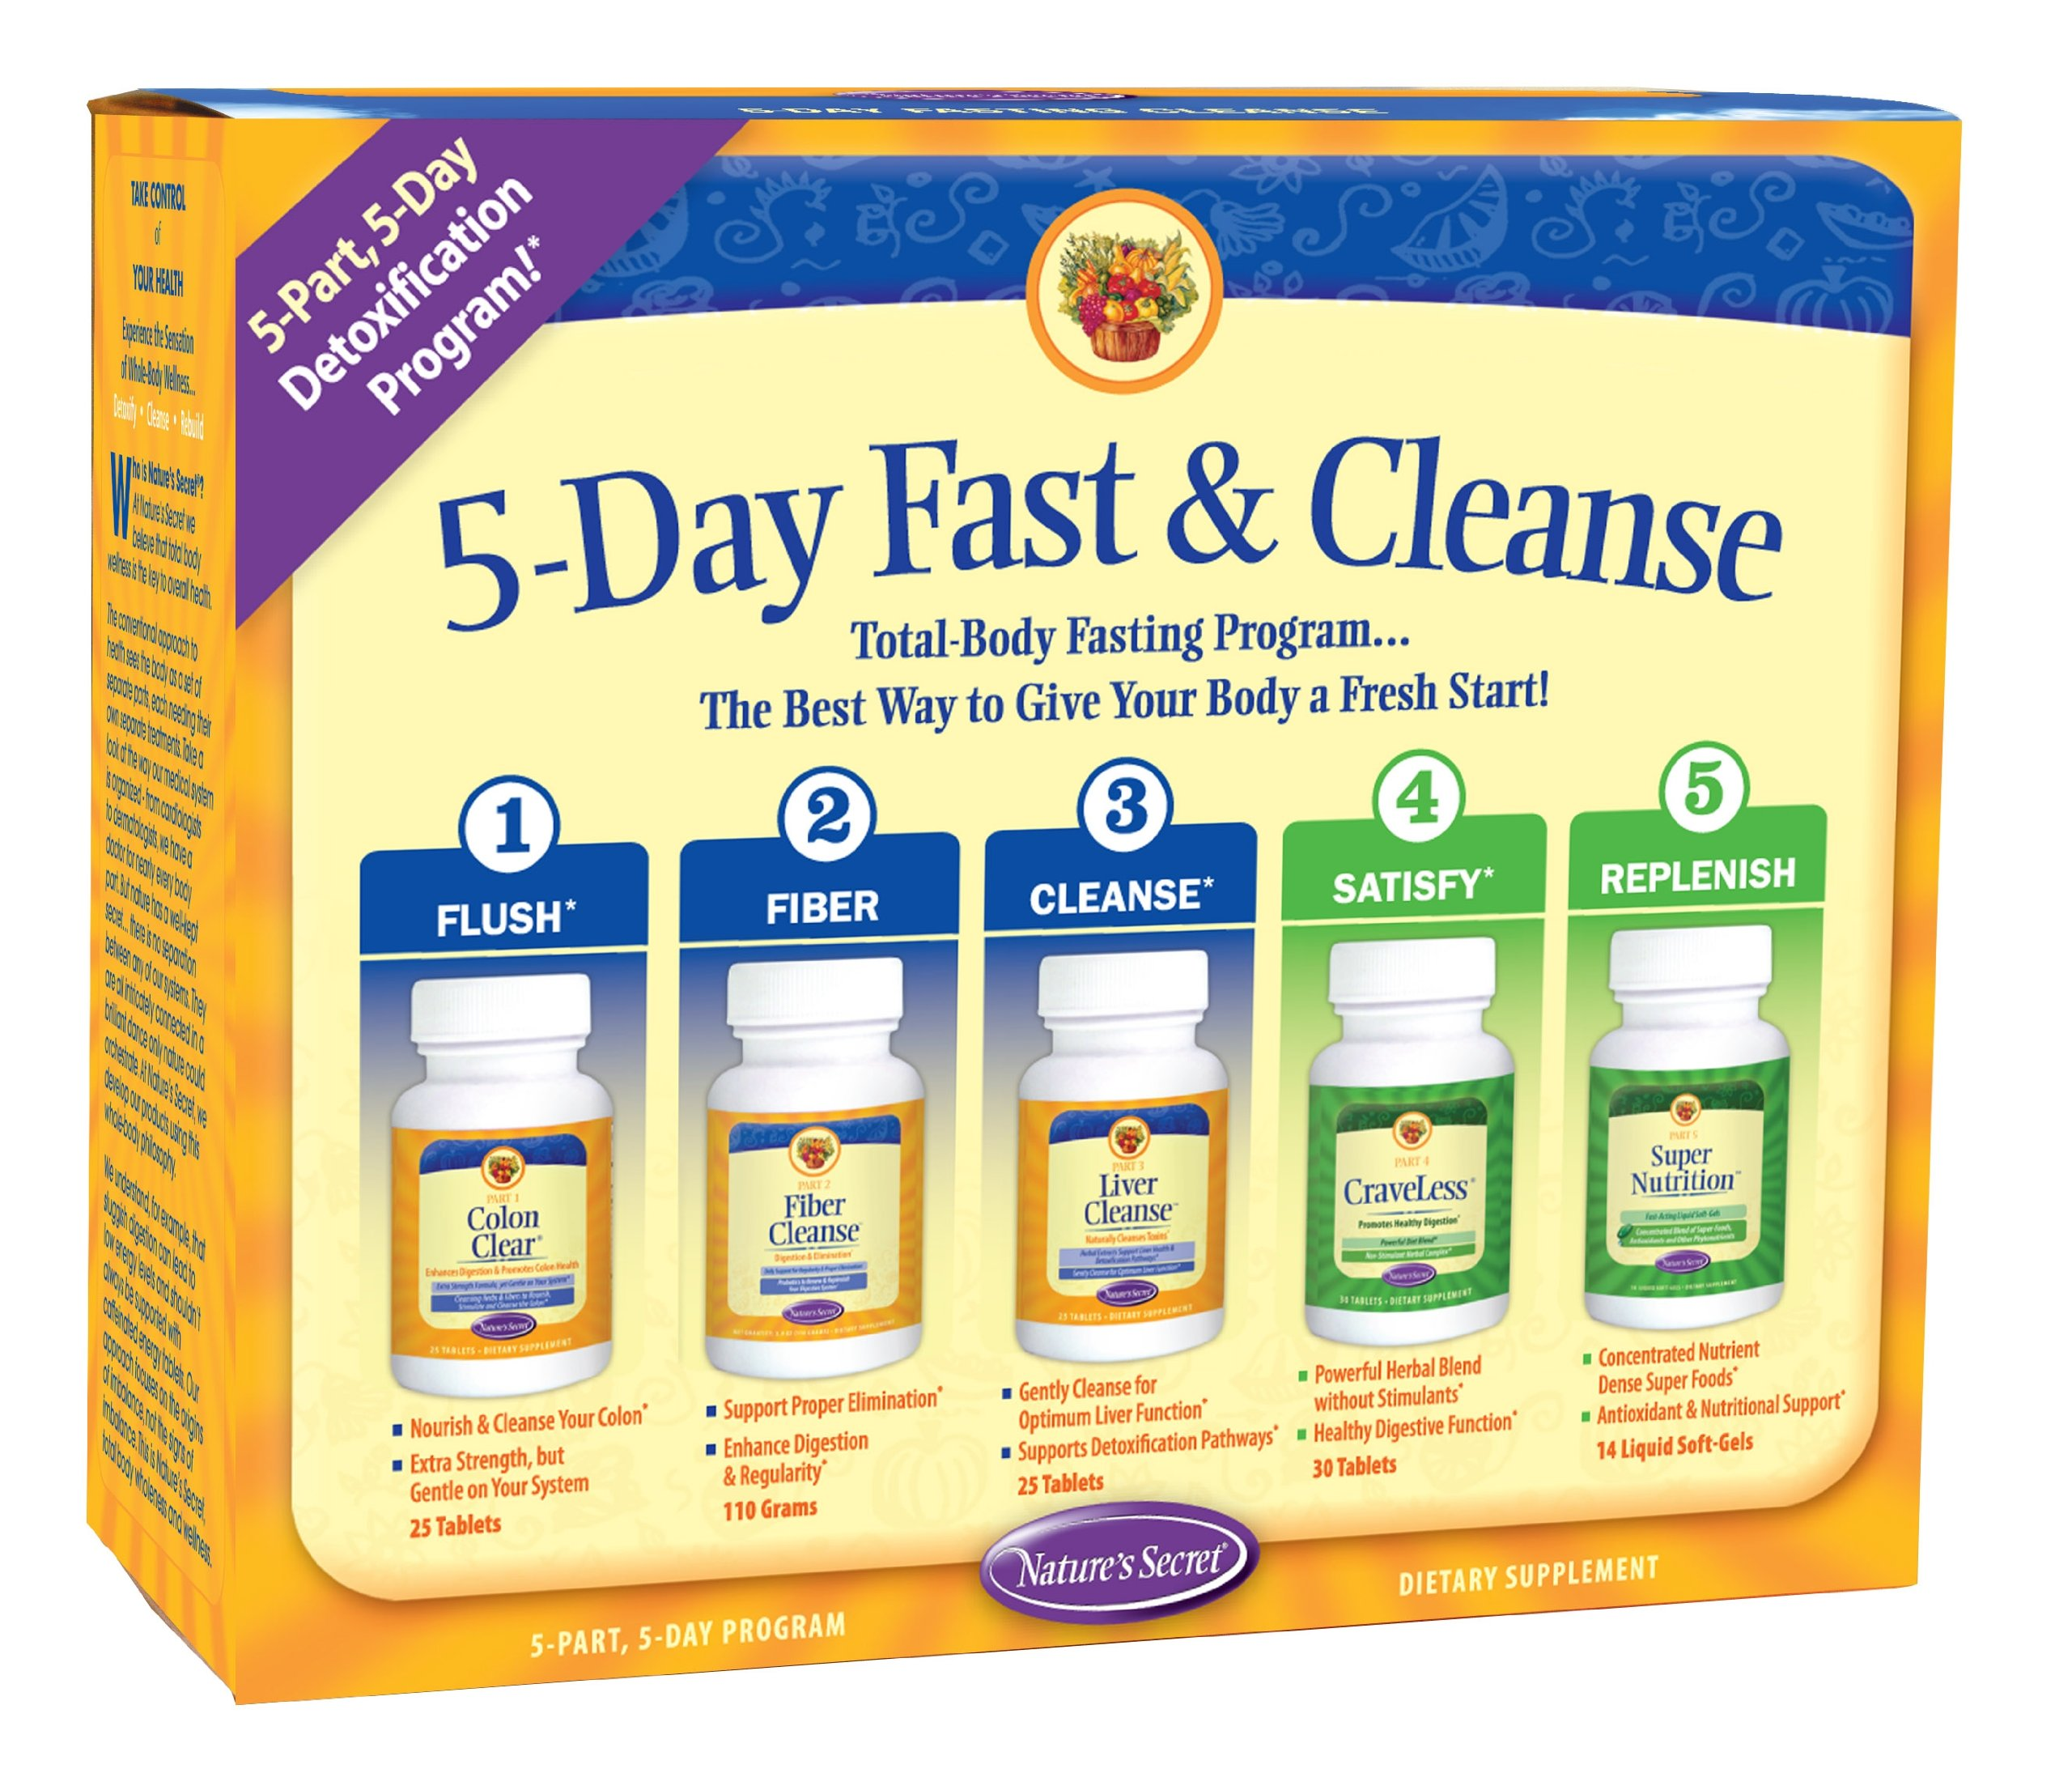 5-Day Fast & Cleanse by Nature's Secret | 5 Day, 5 Part Program by Nature's Secret